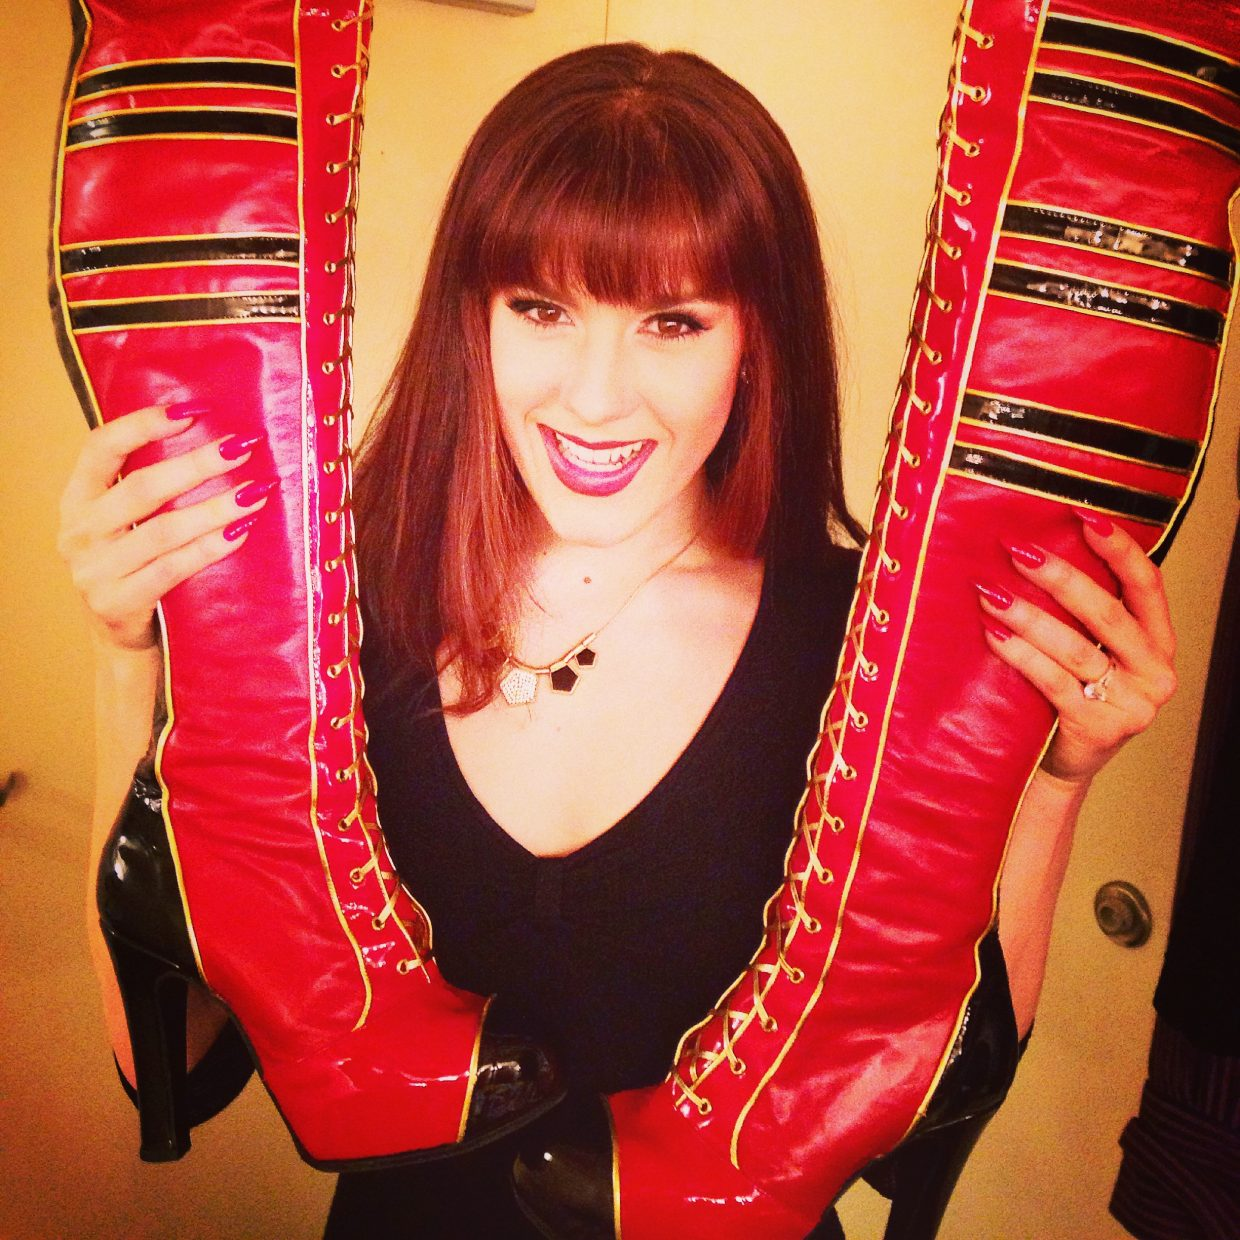 """Steamboat local Grace Stockdale is in character as Nicola for her role in """"Kinky Boots,"""" the show that was in Denver last weekend and is touring across the country during the next year or two."""